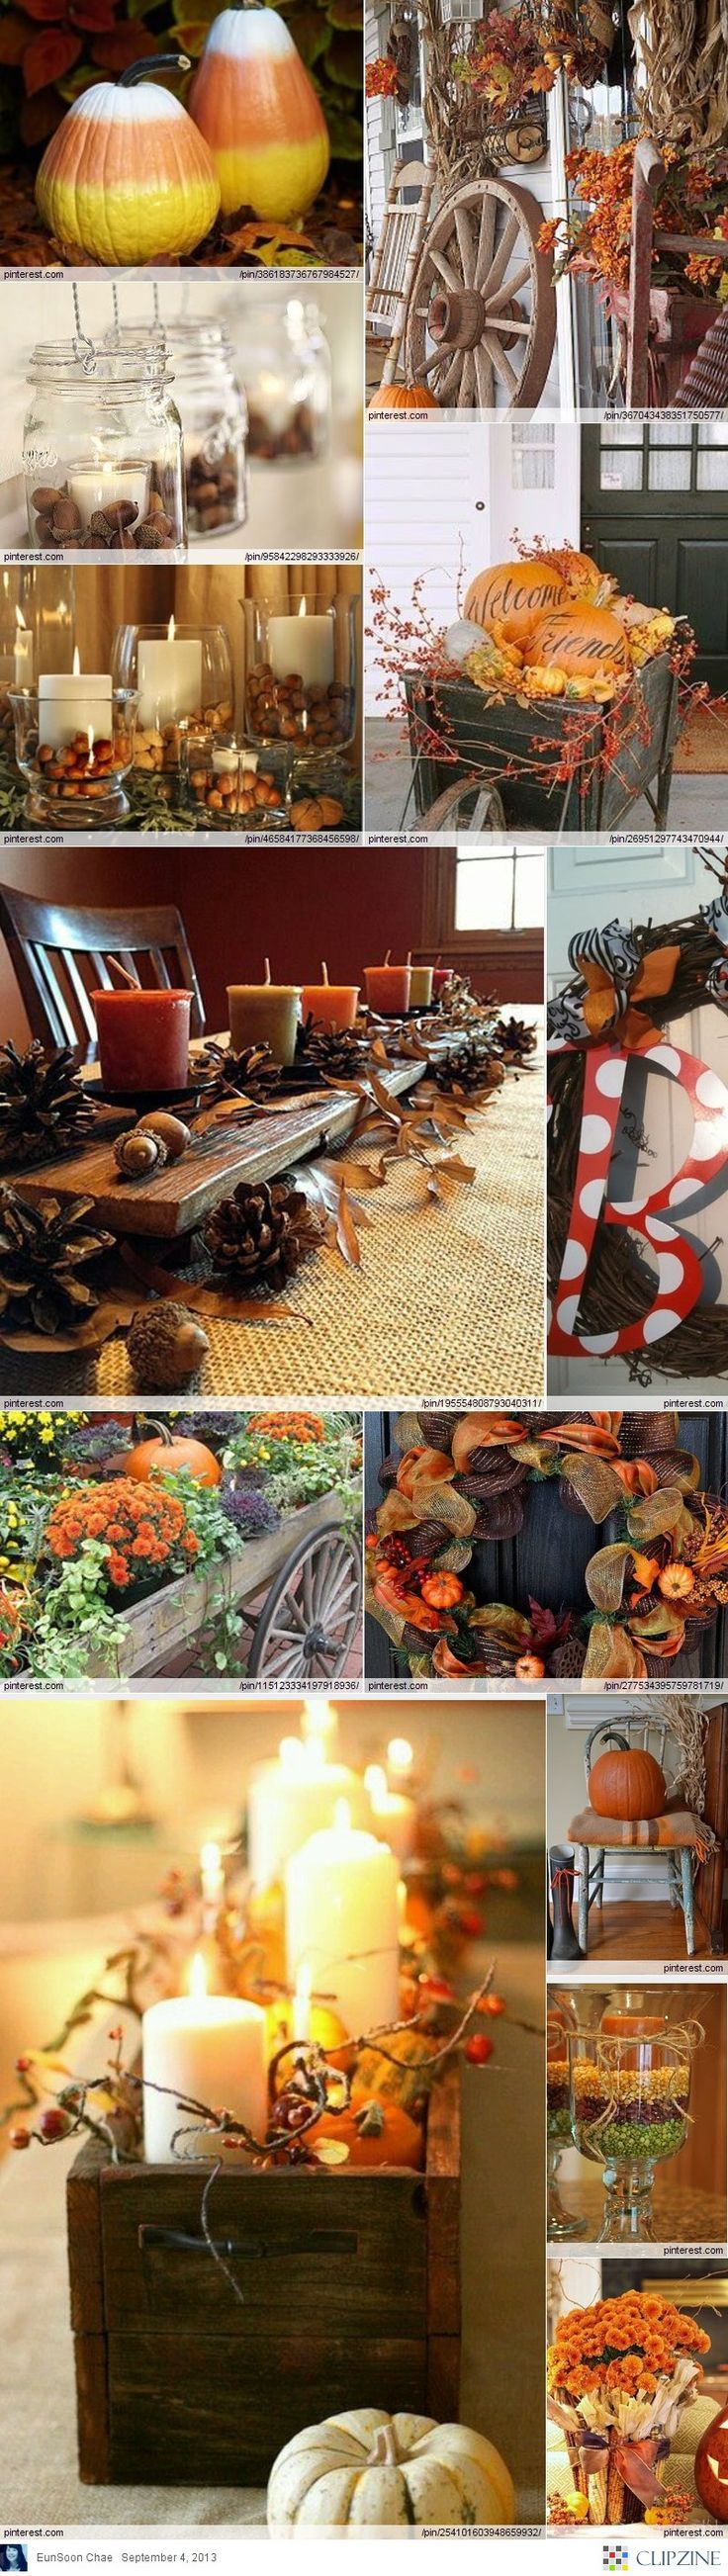 Fall Decorating Idea: